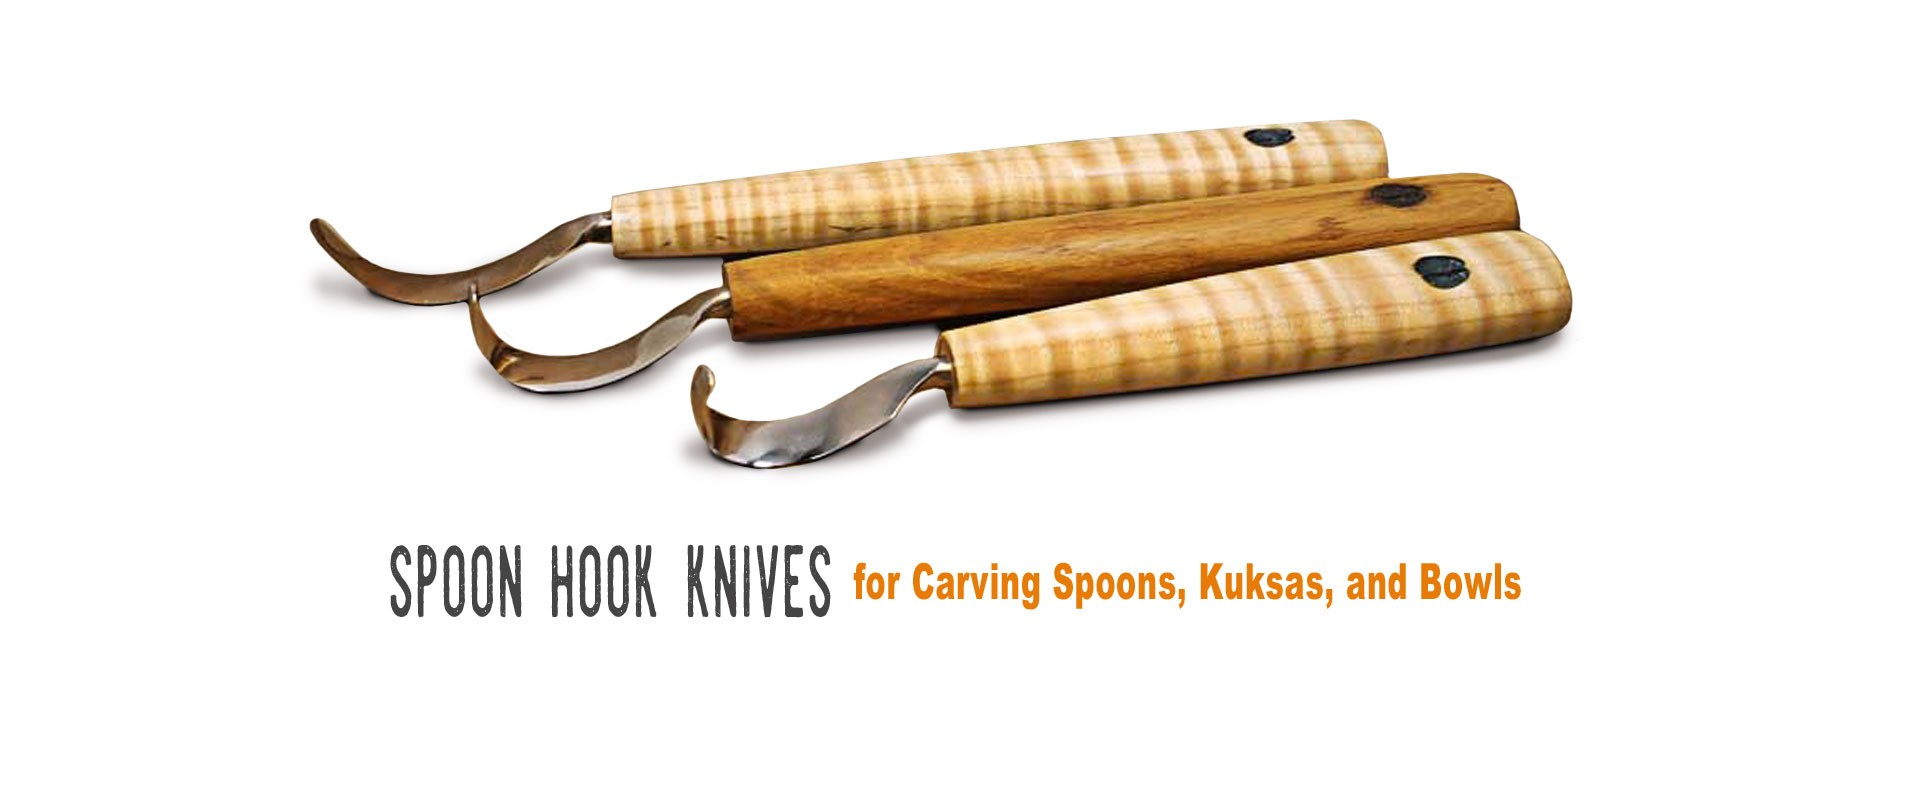 What are the best knives for carving spoons, and kuksa.